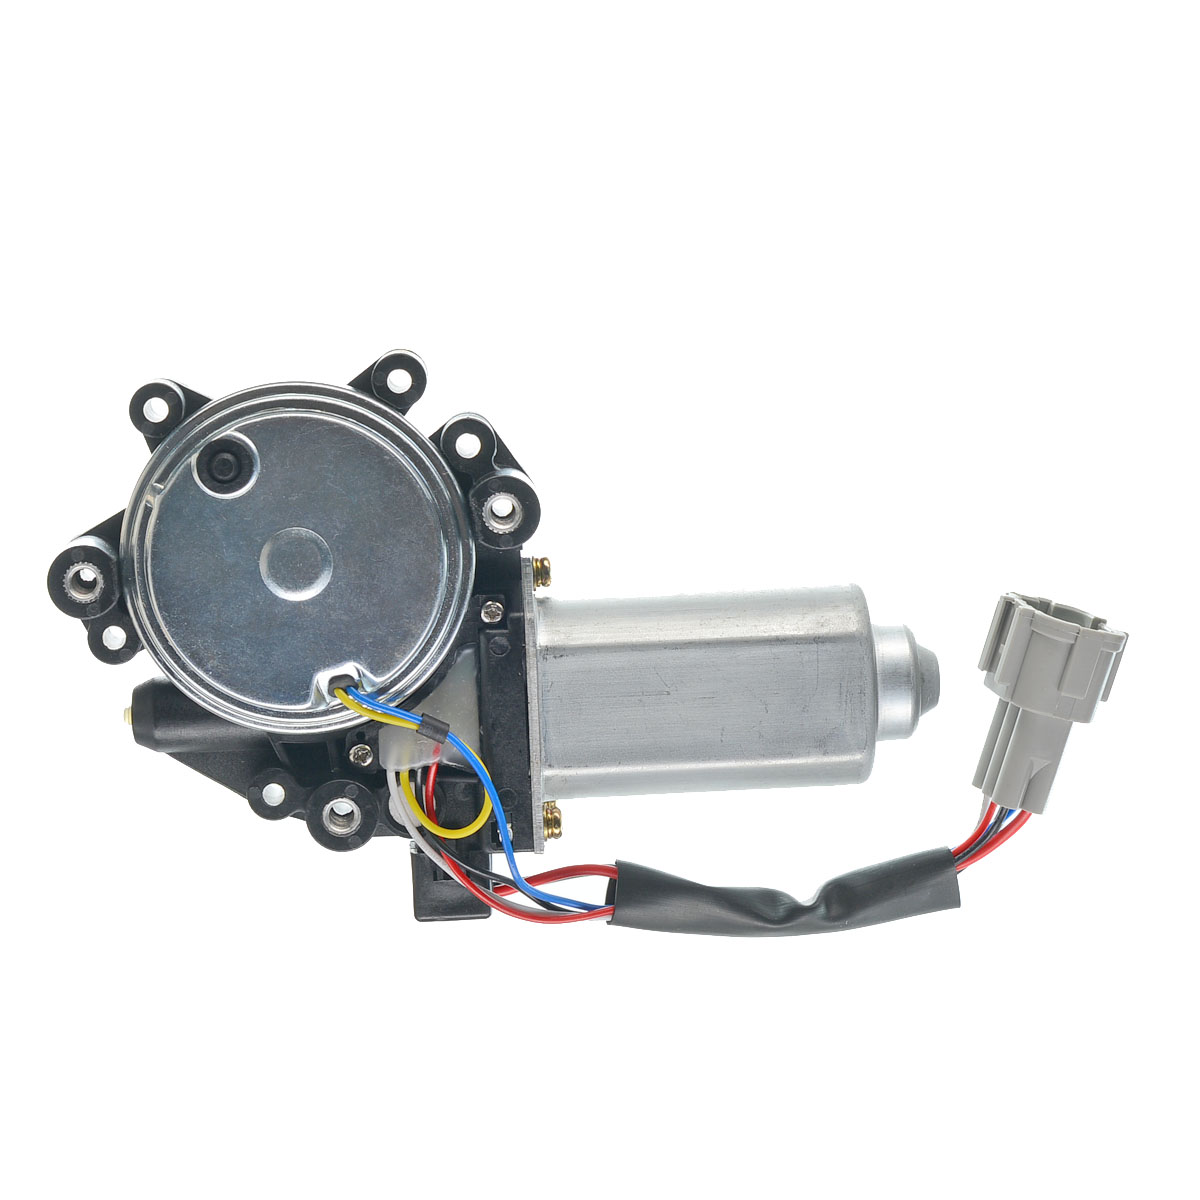 small resolution of window lift motor for nissan armada titan 2004 2005 2006 2007 2008 2009 2010 2015 qx56 front right passenger